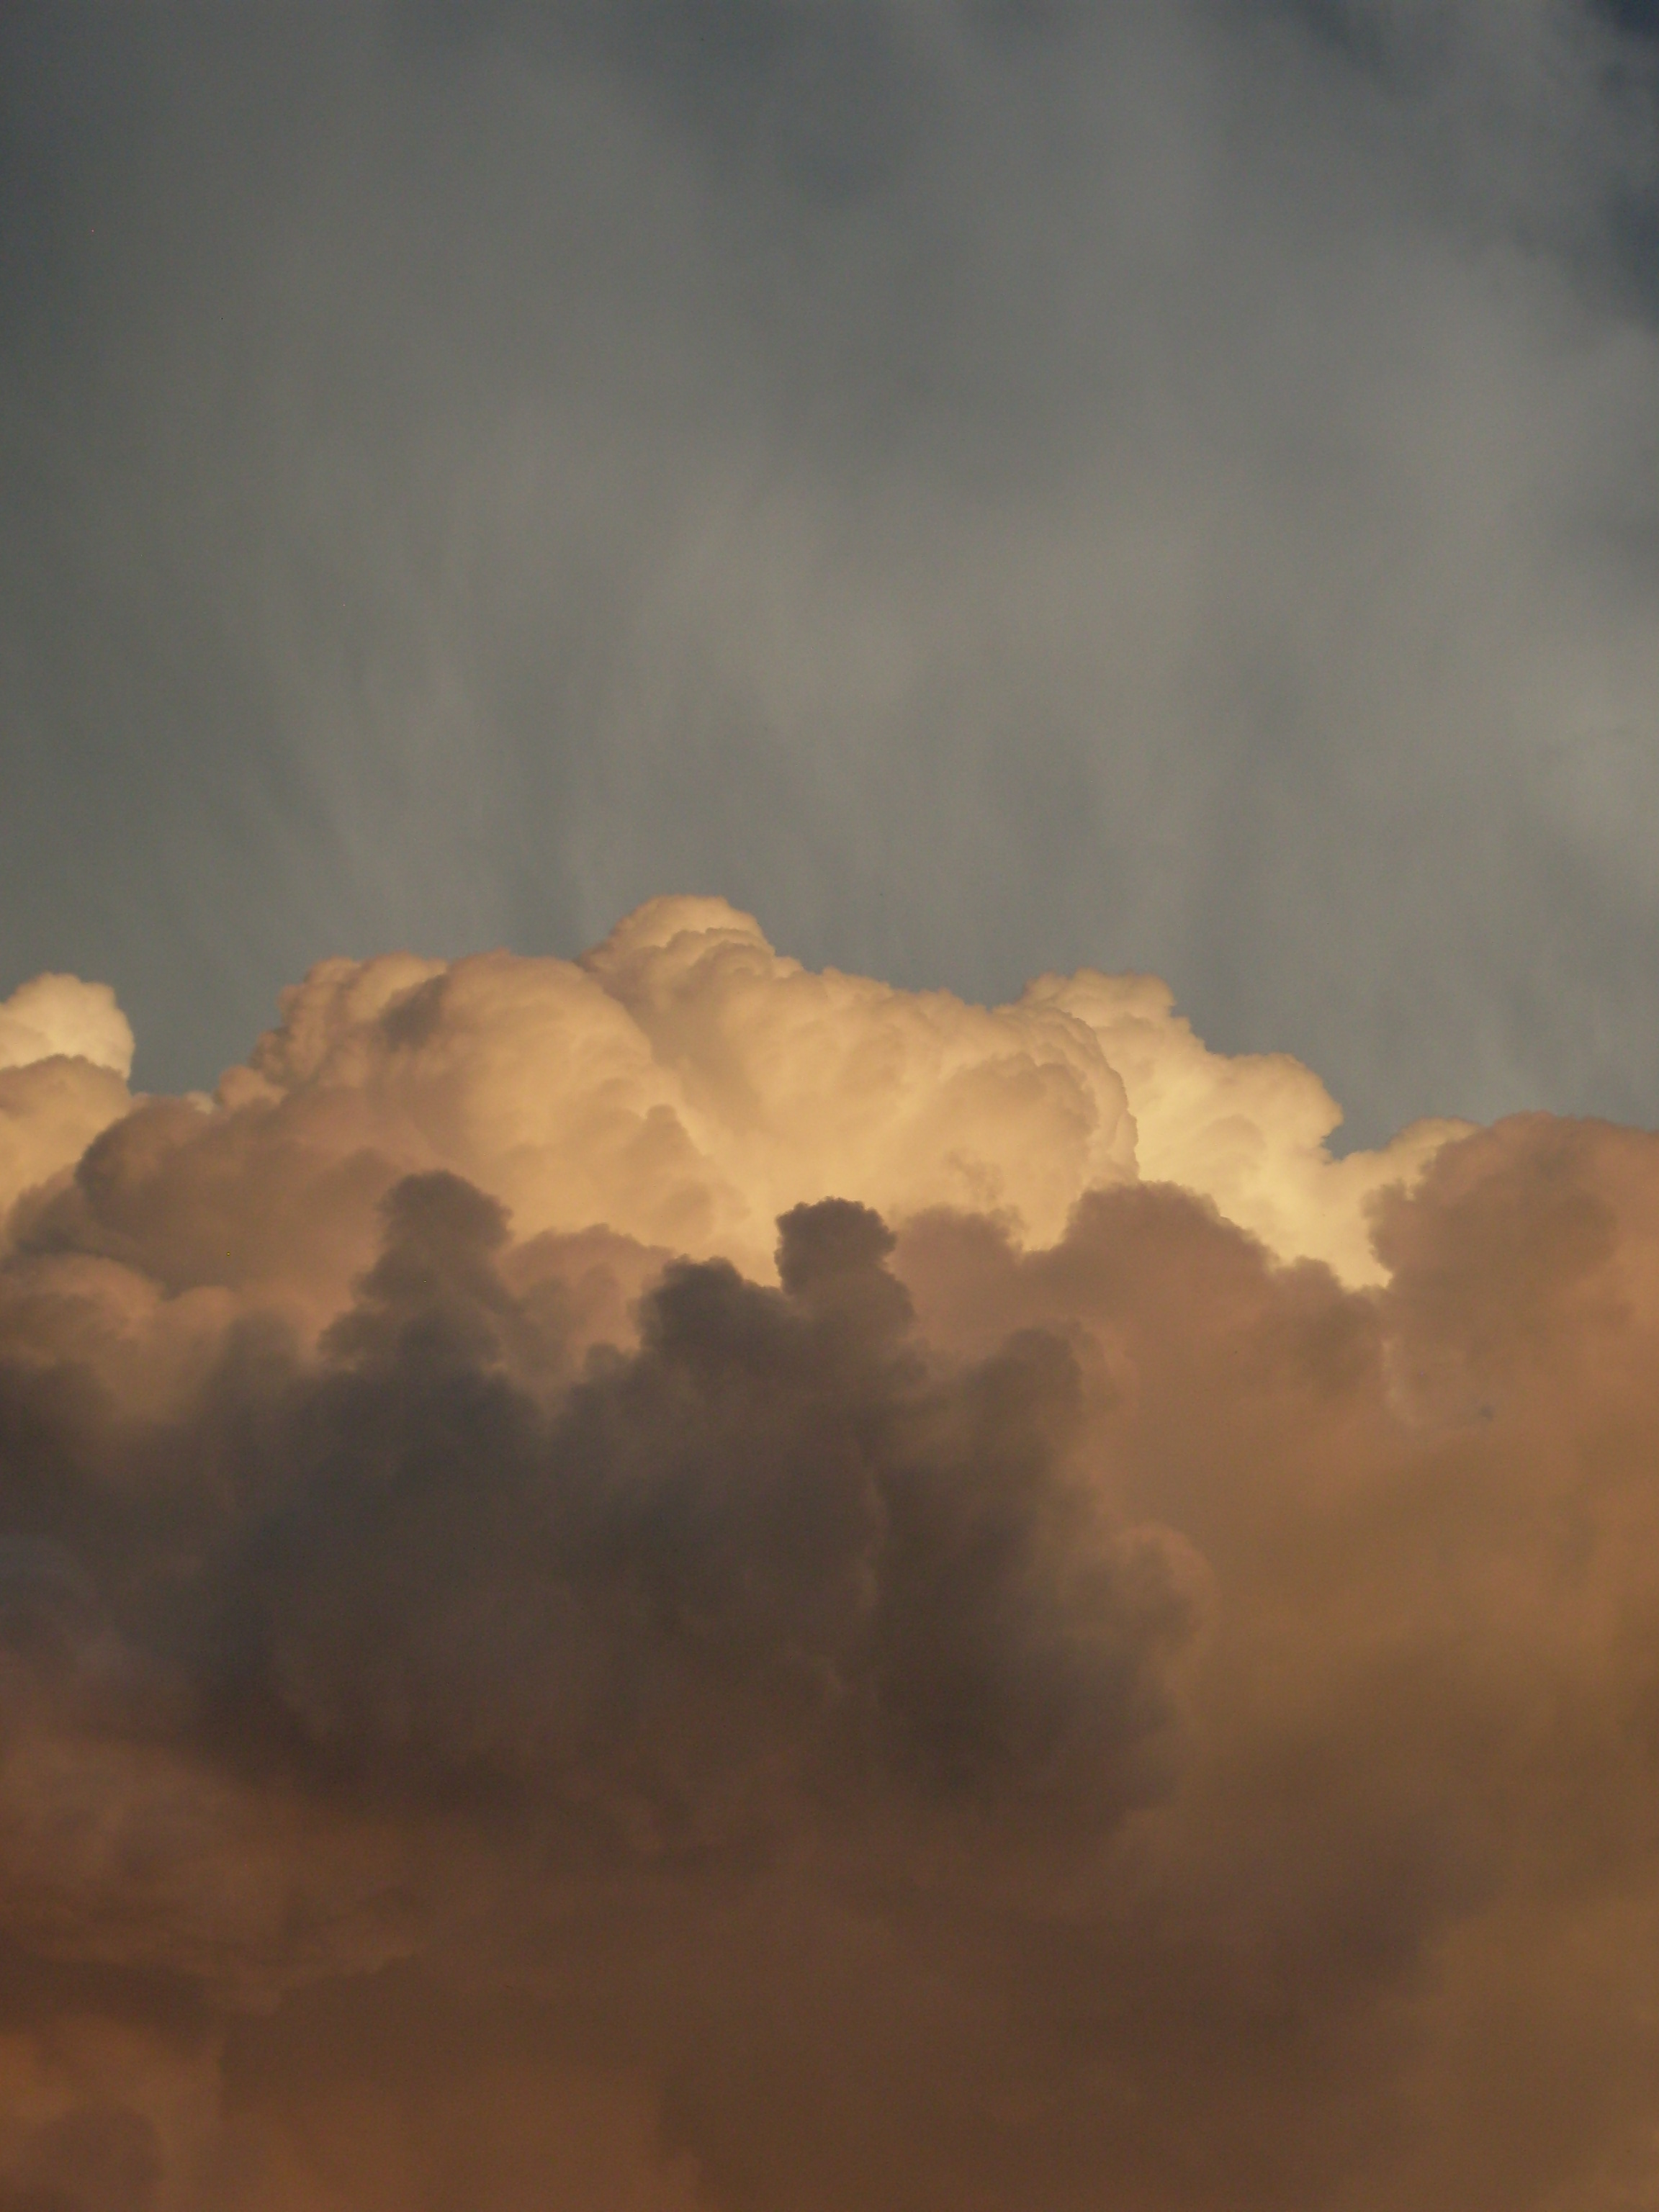 Evening Clouds - Image 5